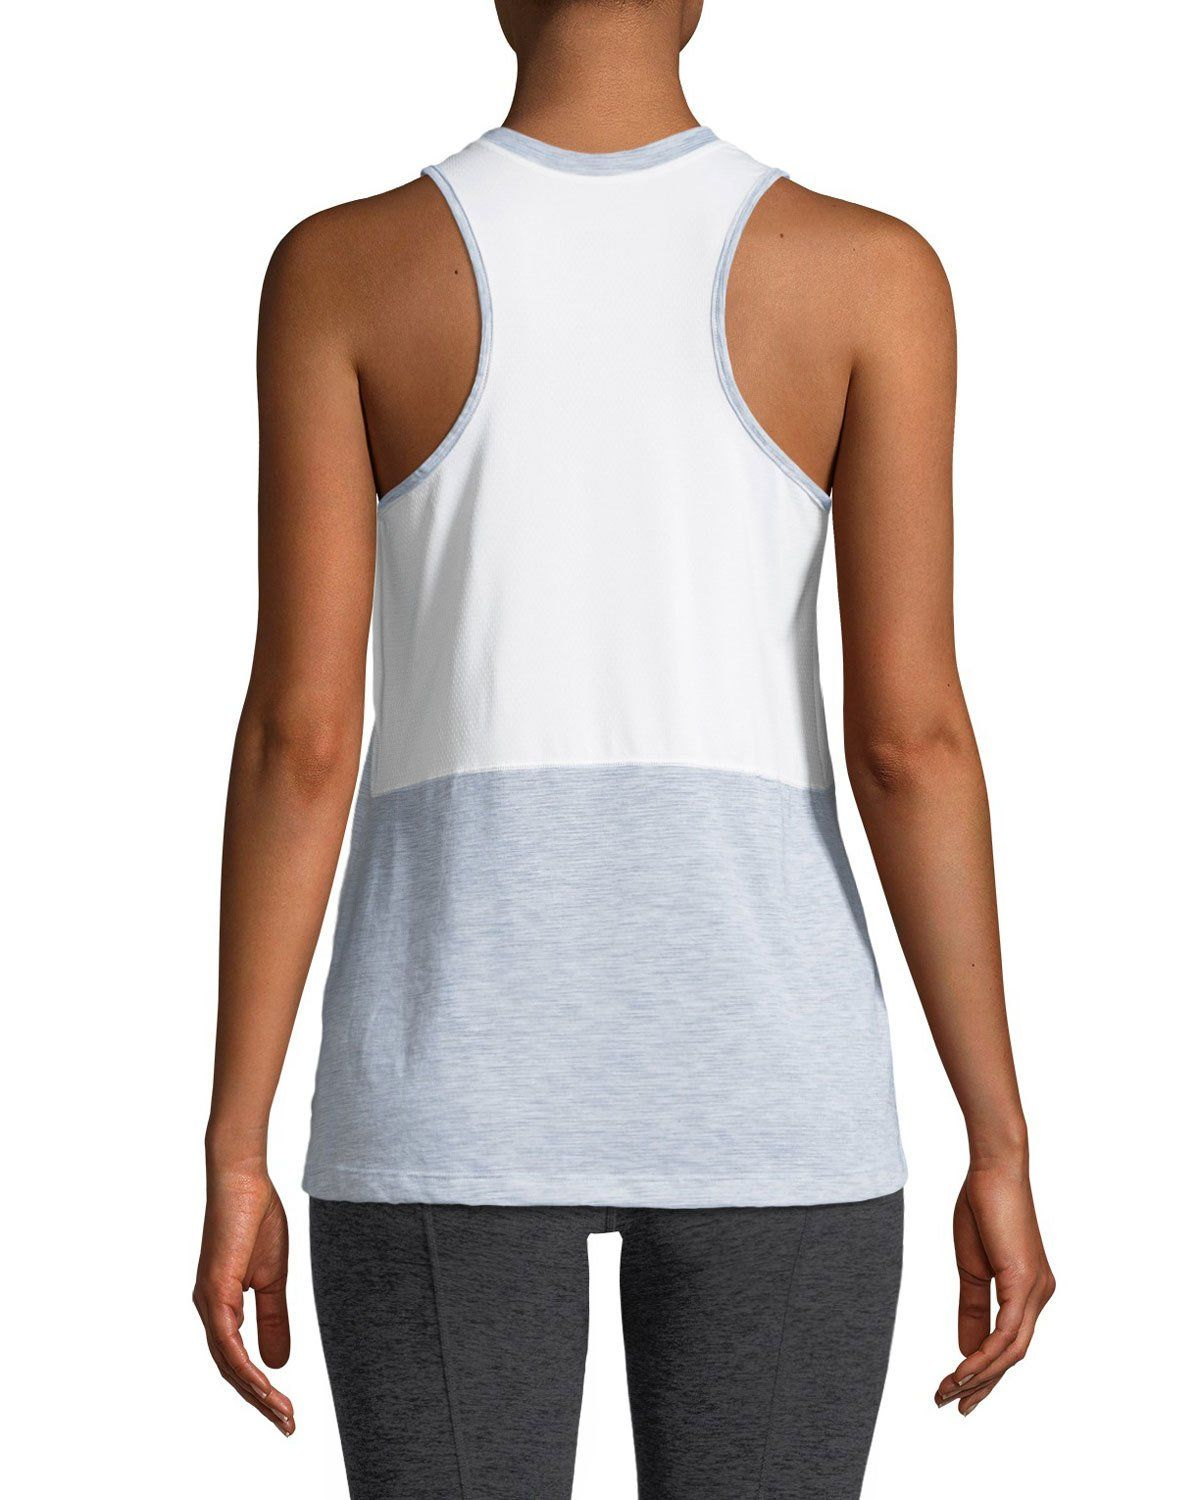 0b5f0fc7b Reactor Mesh-Panel Tank Top Light Gray | Products | Athletic tank ...